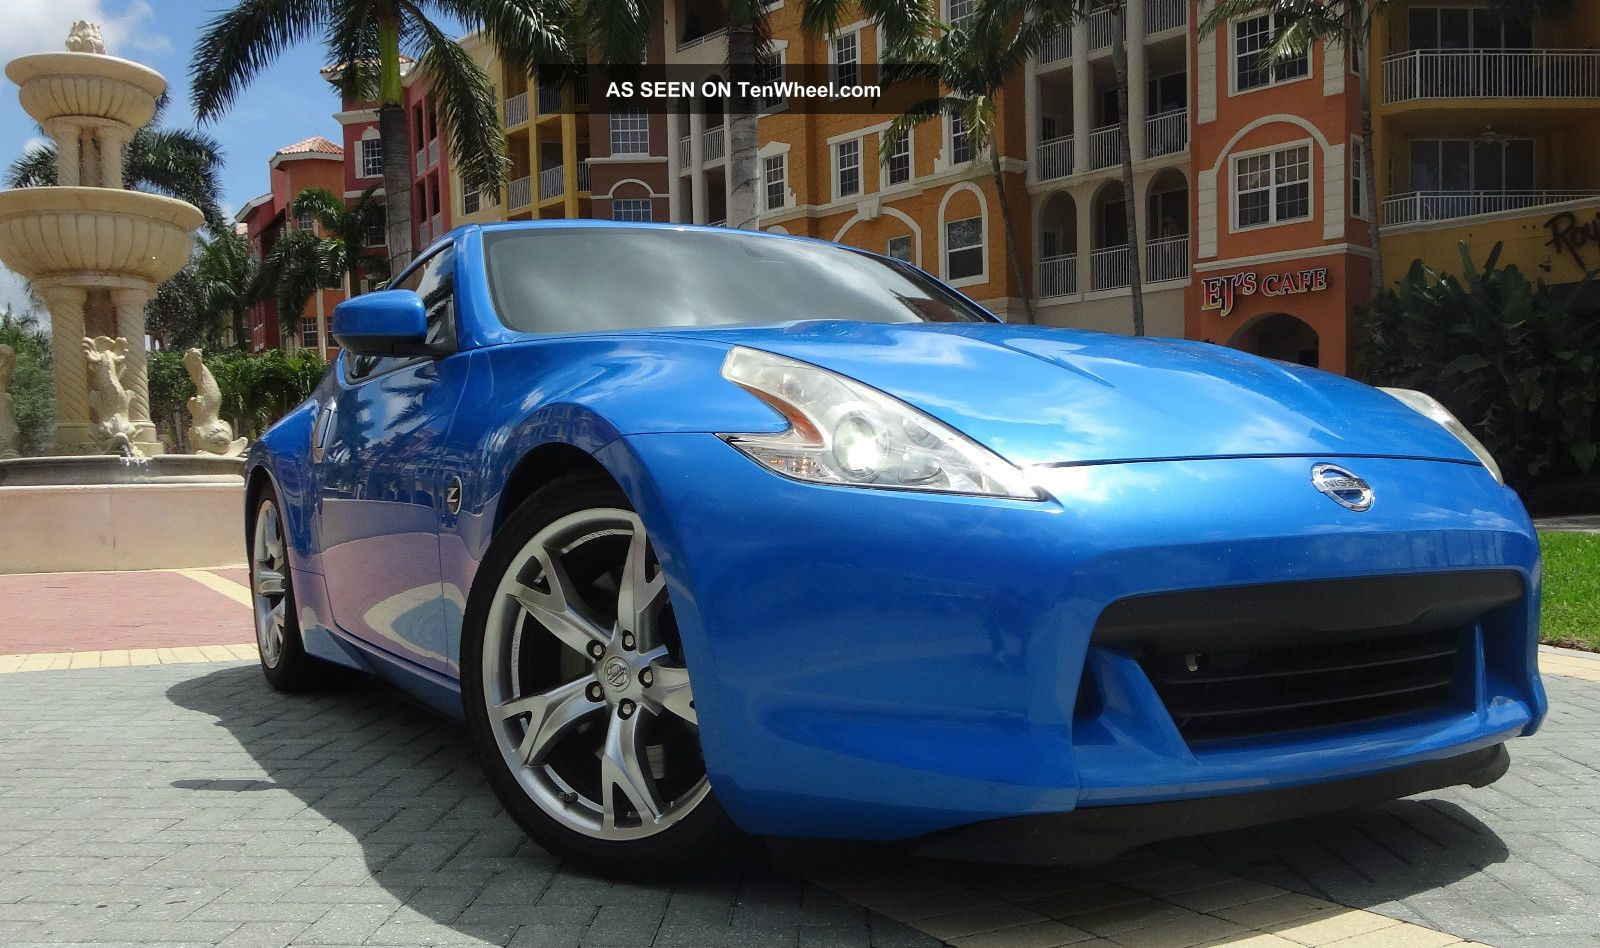 2009 nissan 370z touring coupe 2 door 3 7l 6 speed manual transmission - Nissan 370z touring coupe ...